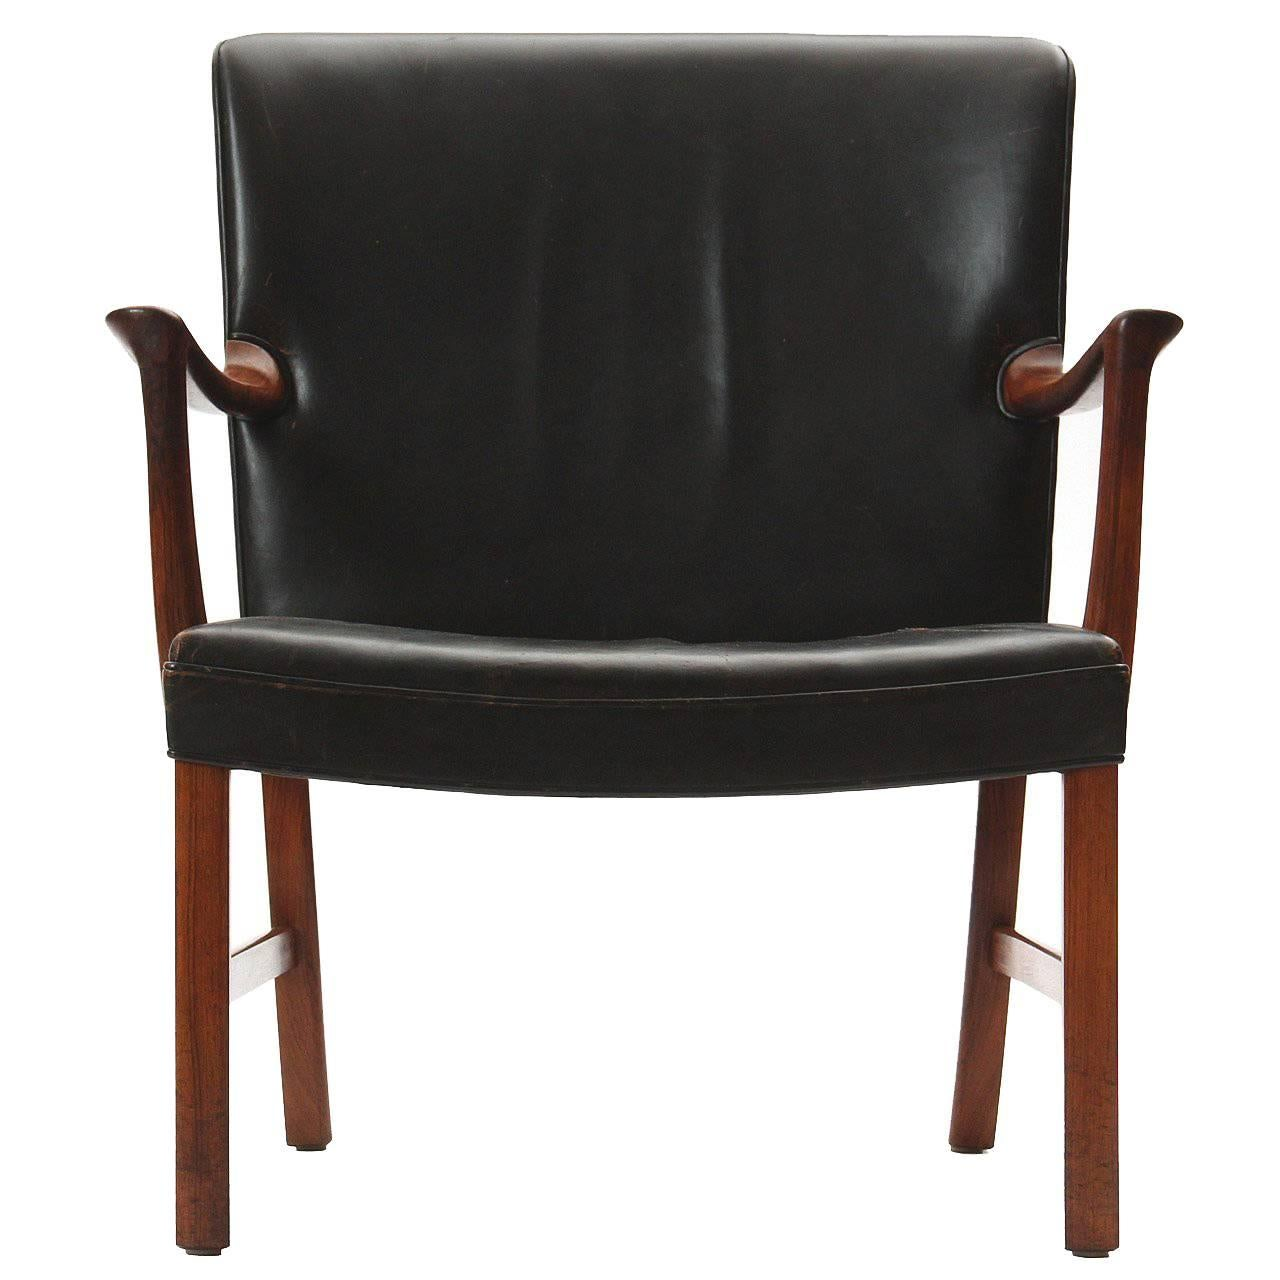 Broad Lounge Chair by Ole Wanscher